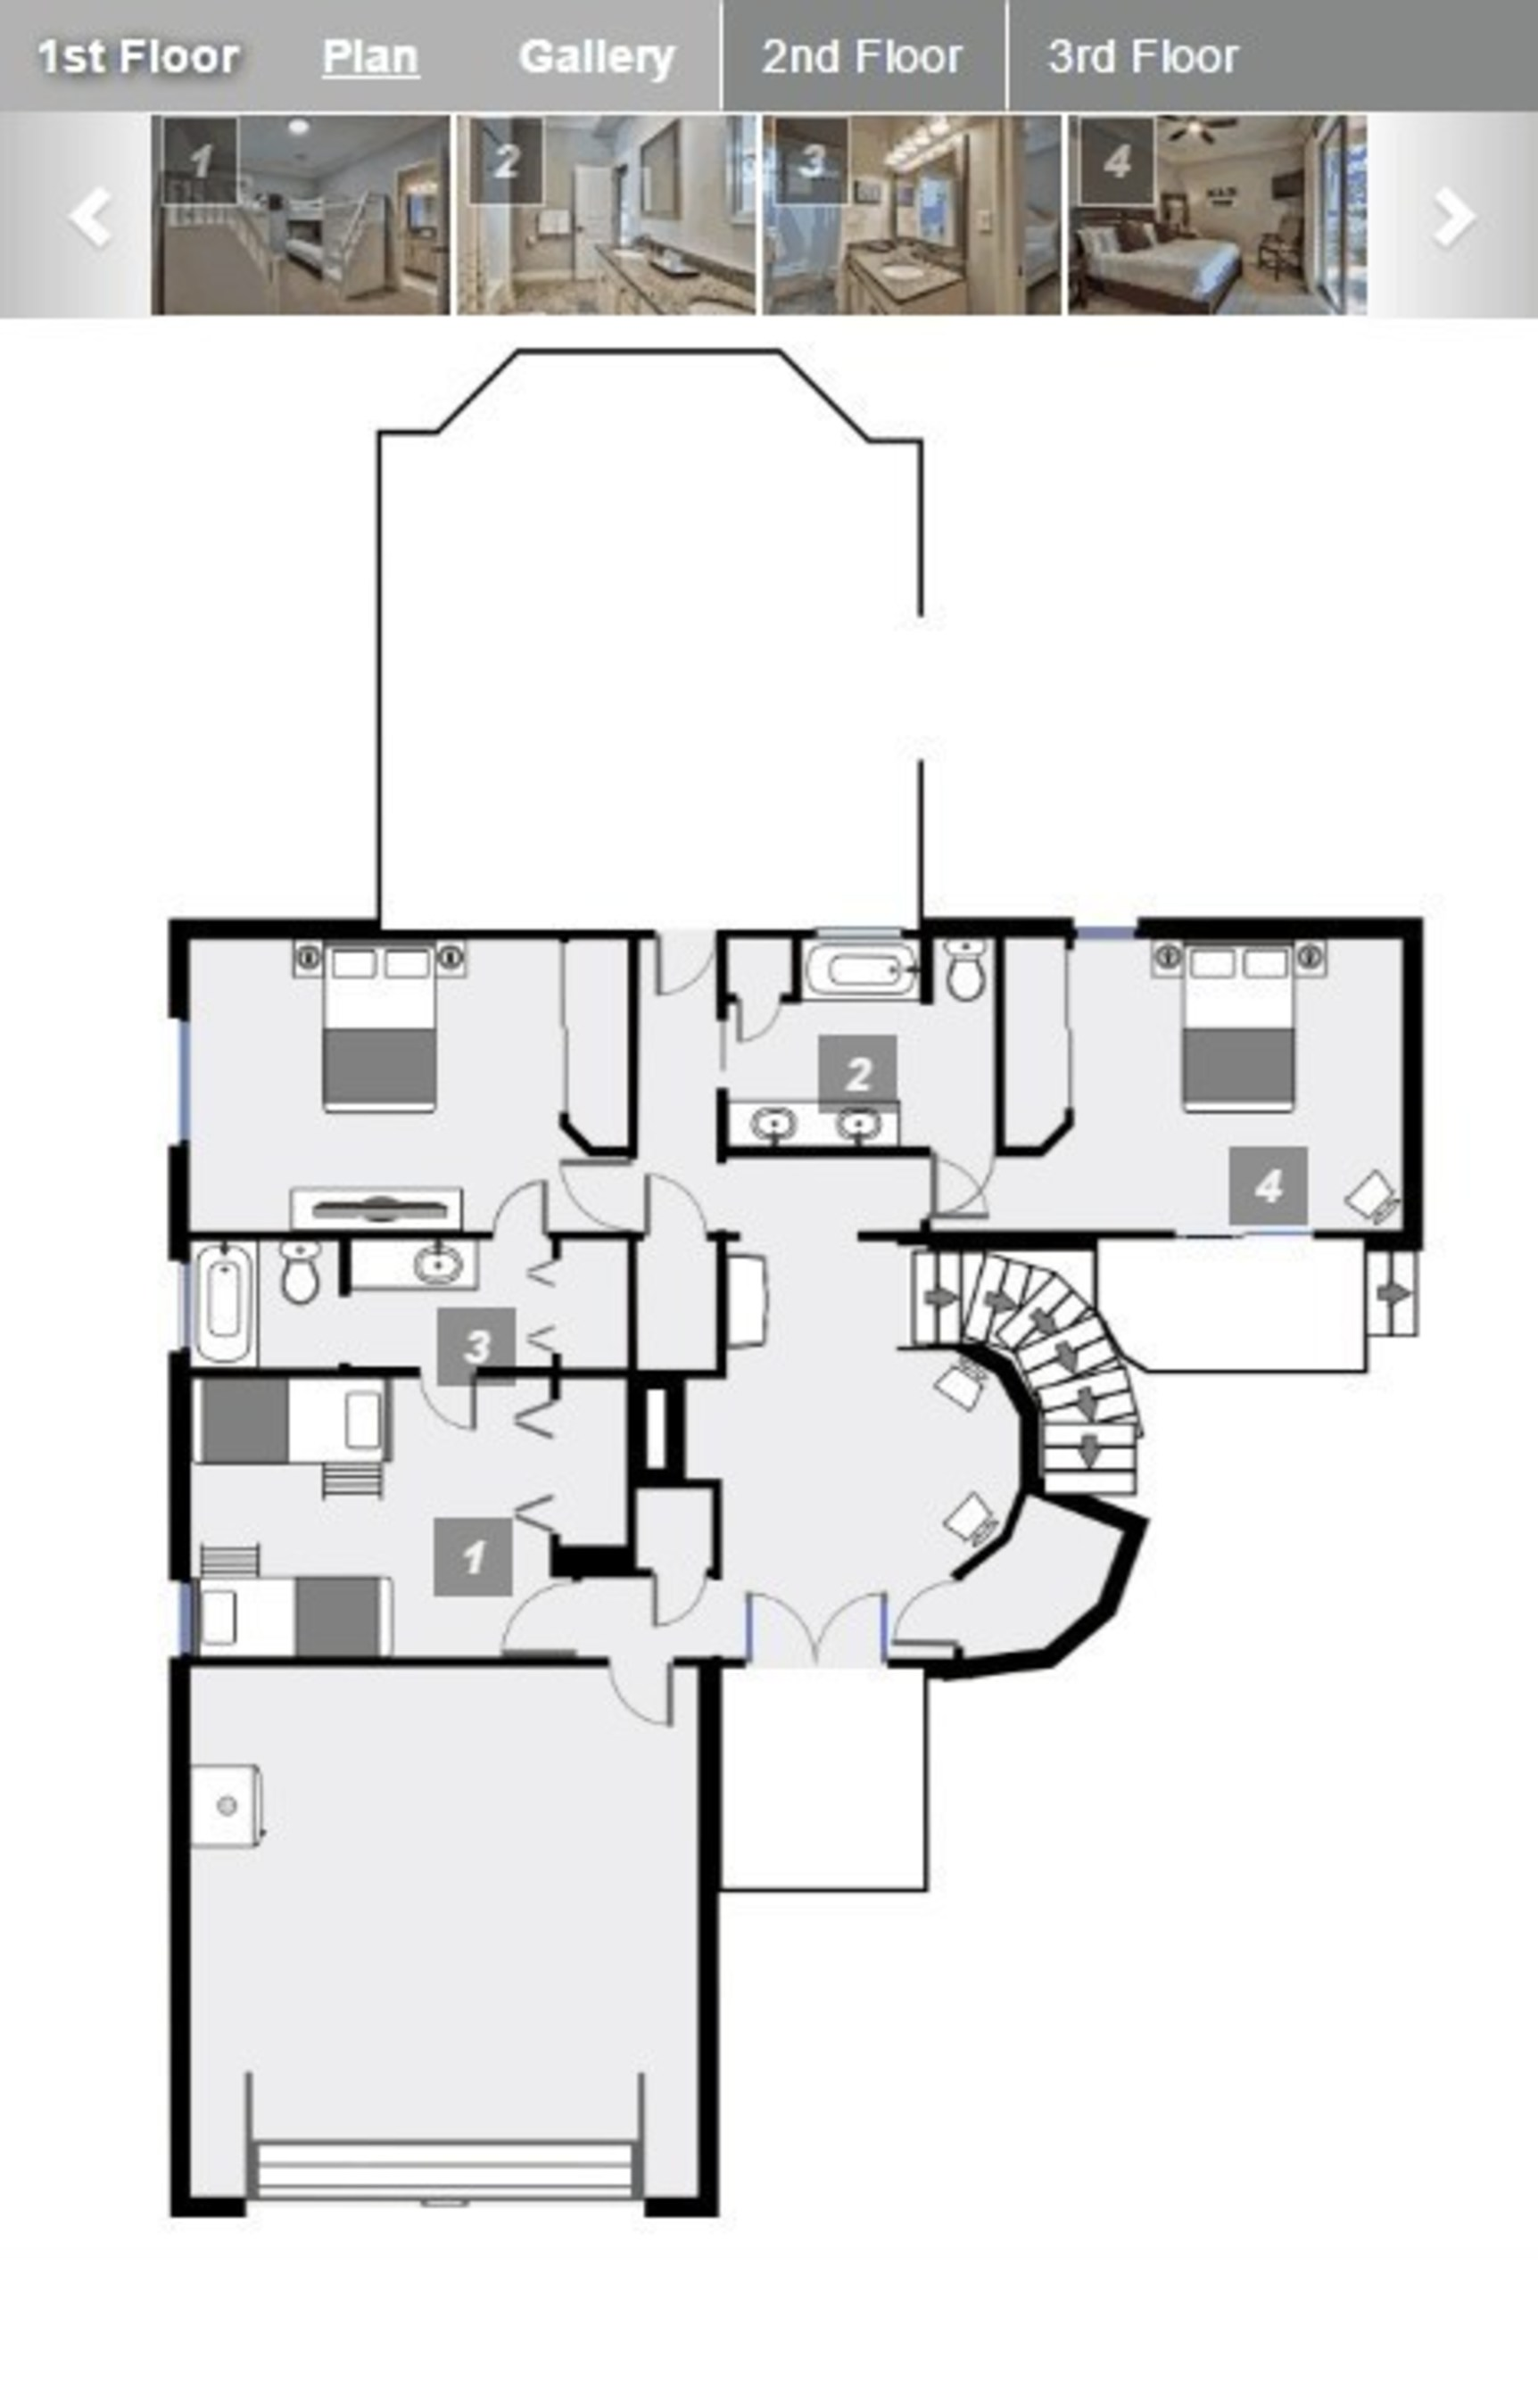 CartoBlue Interactive Floor Plans Increase Engagement and Conversions for Real Estate and Vacation Rental Listings